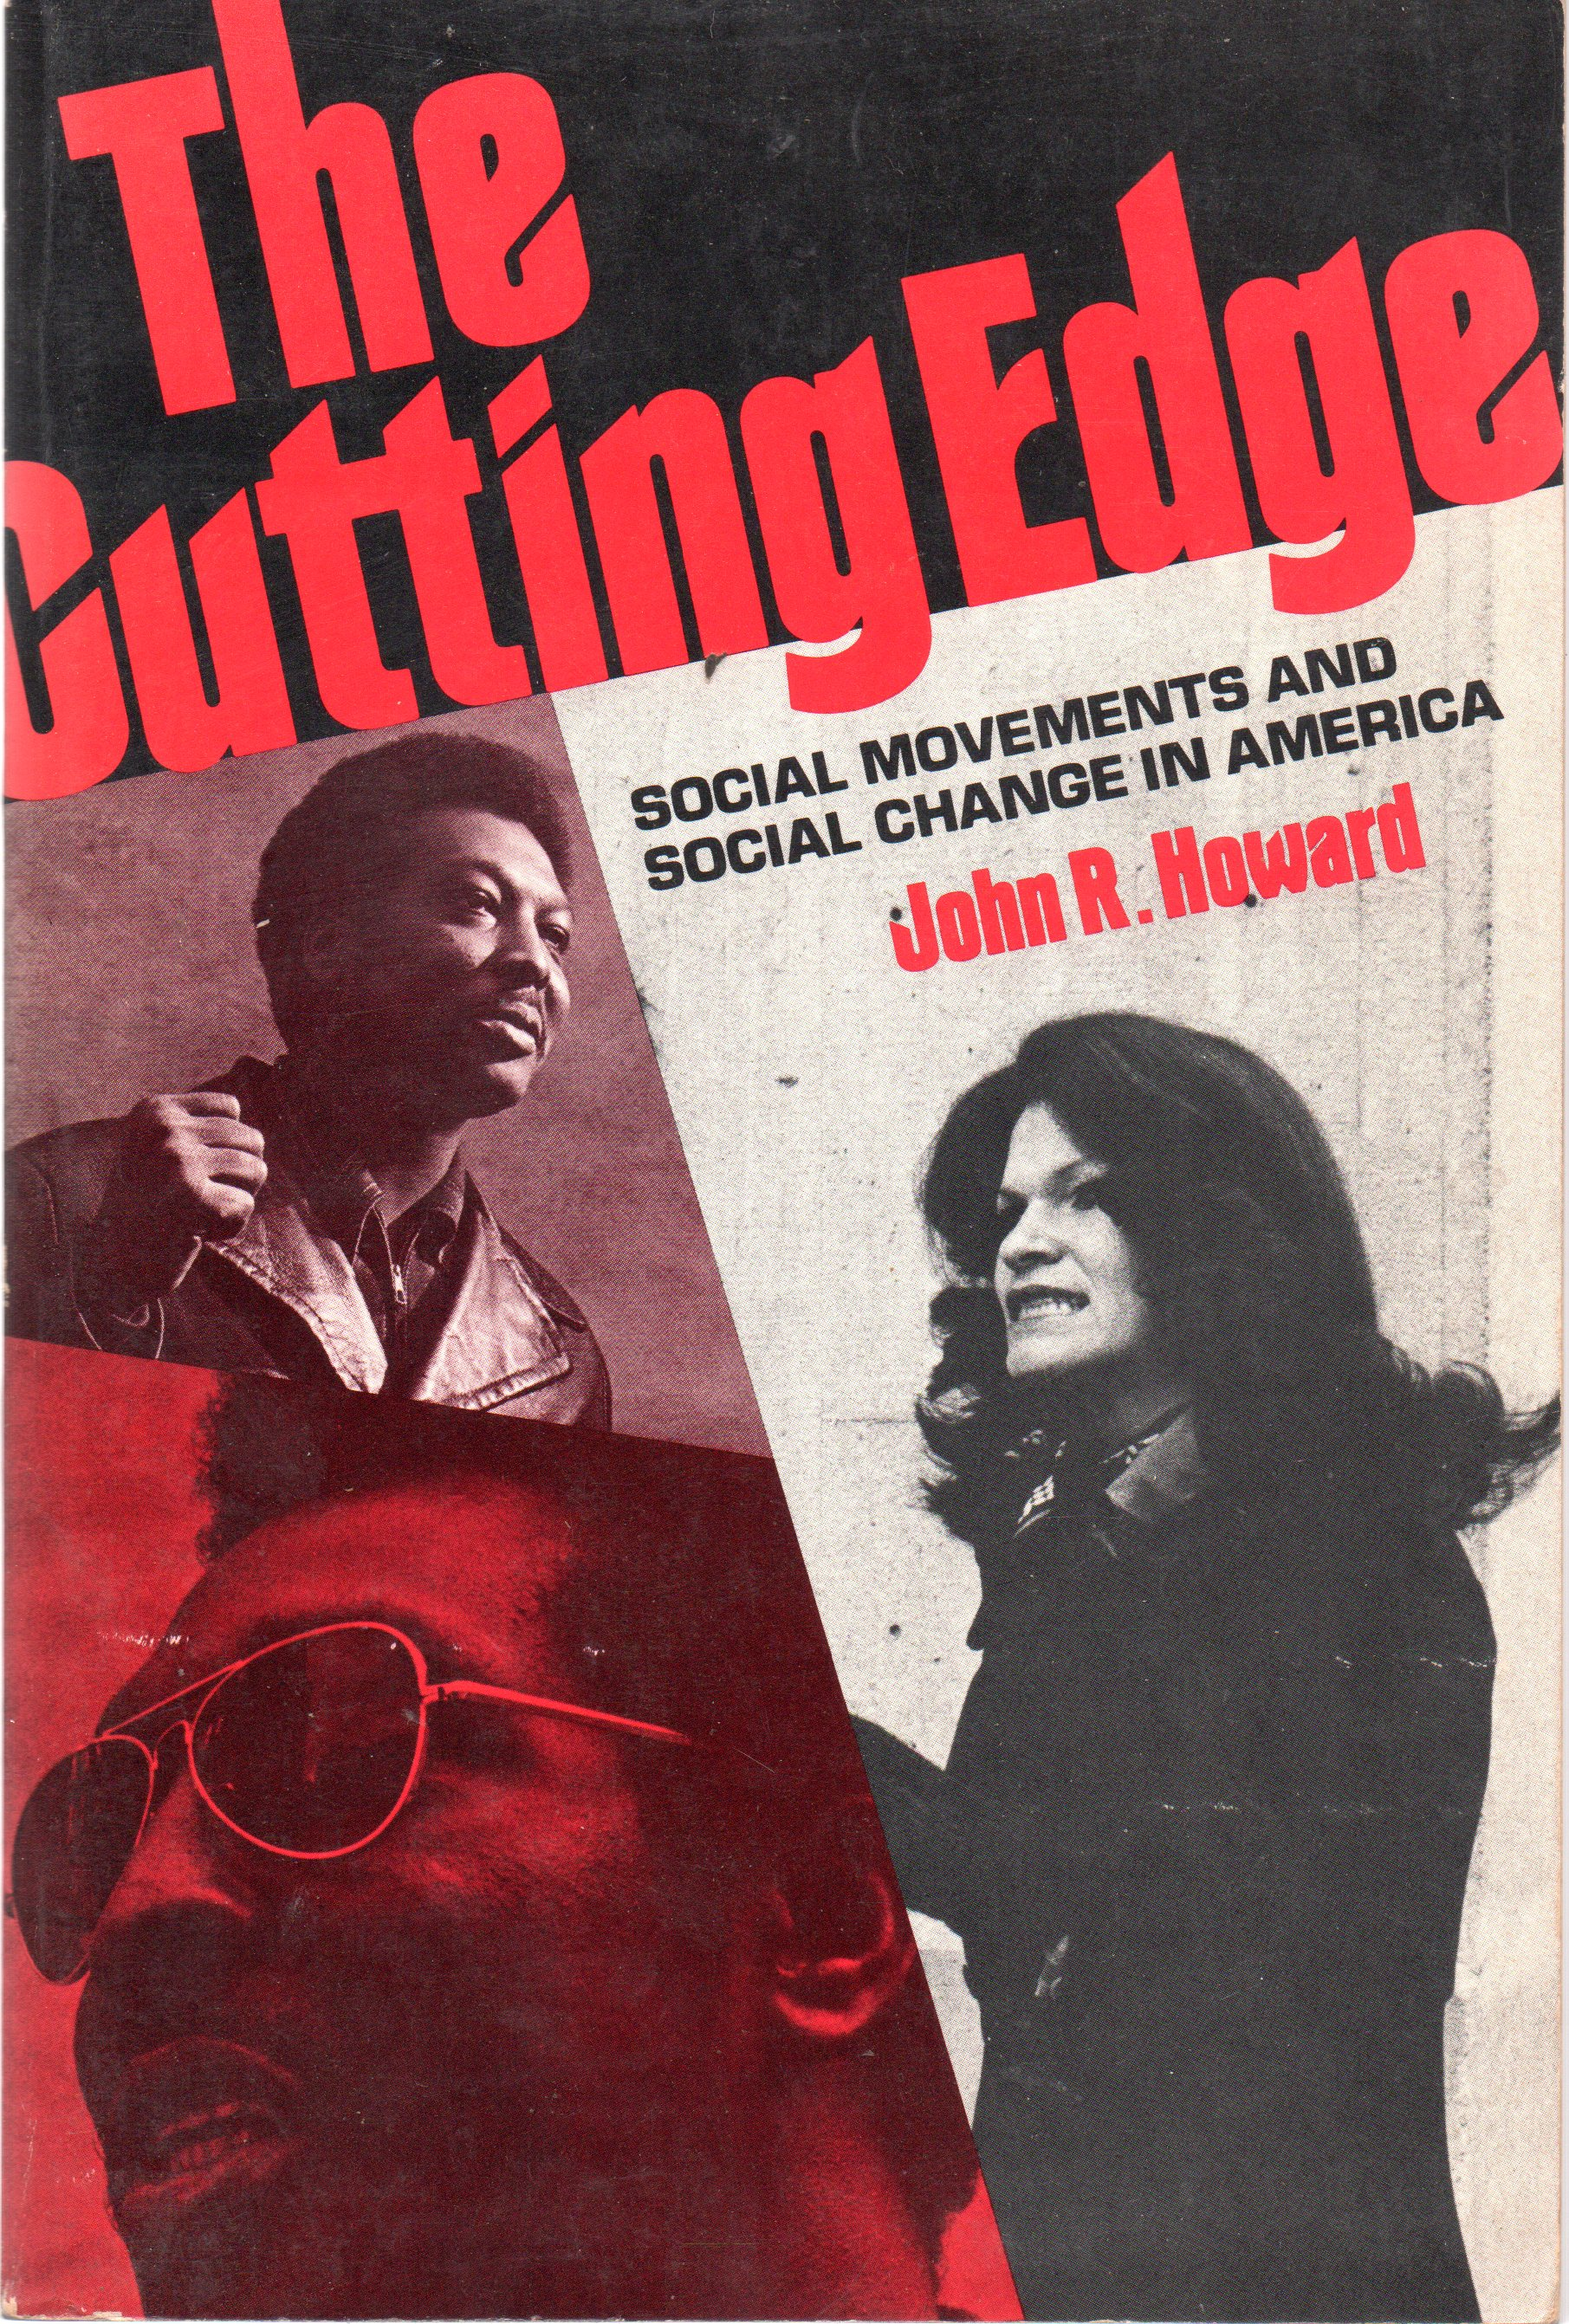 Image for The Cutting Edge: Social Movements and Social Change in America